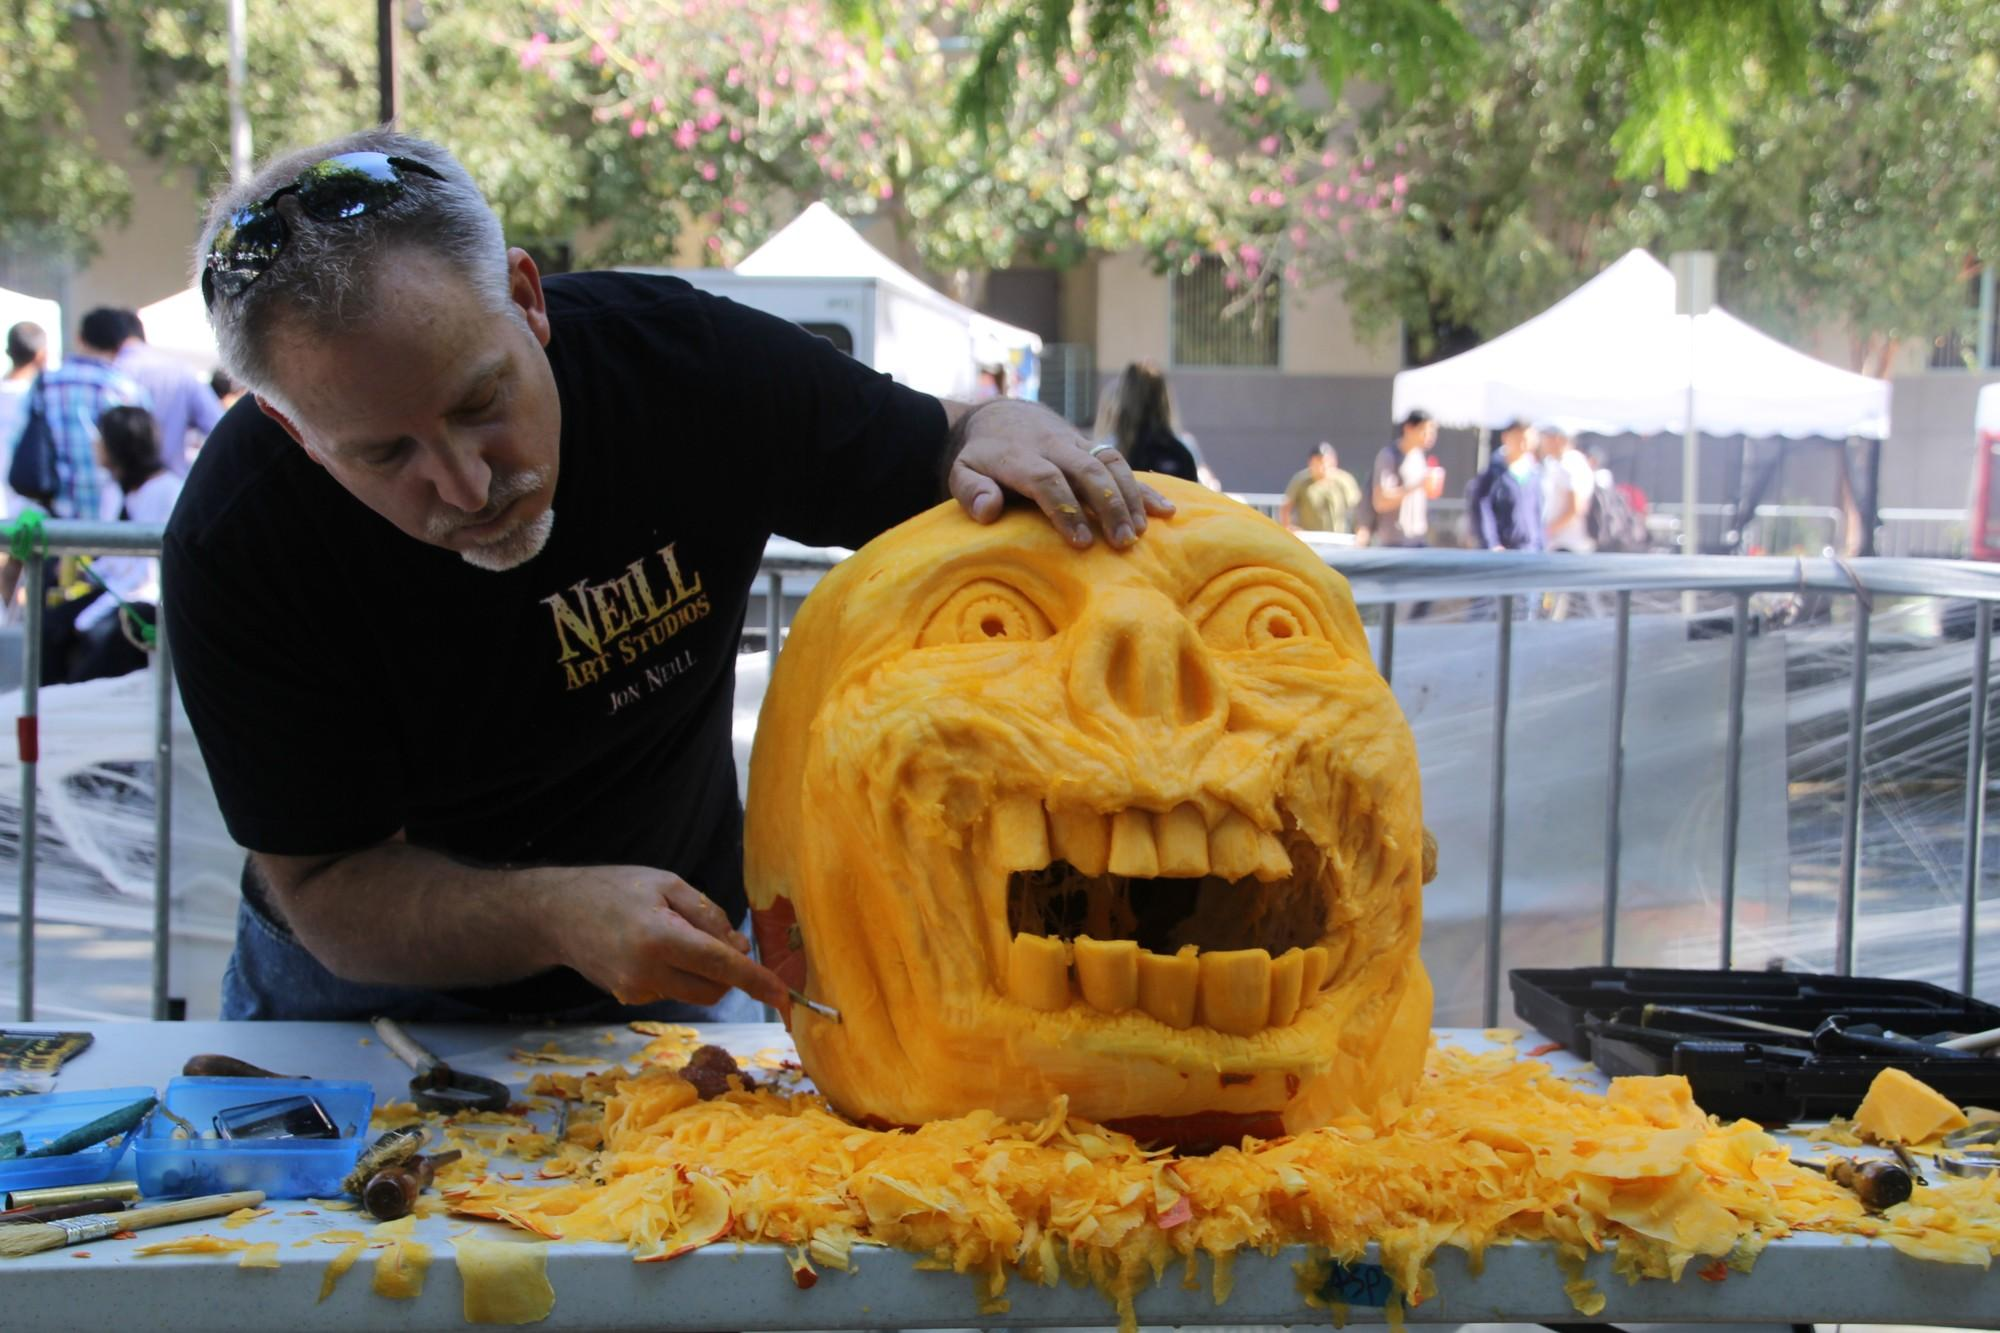 Man+carves+pumpkin+in+shape+of+a+monster%27s+face